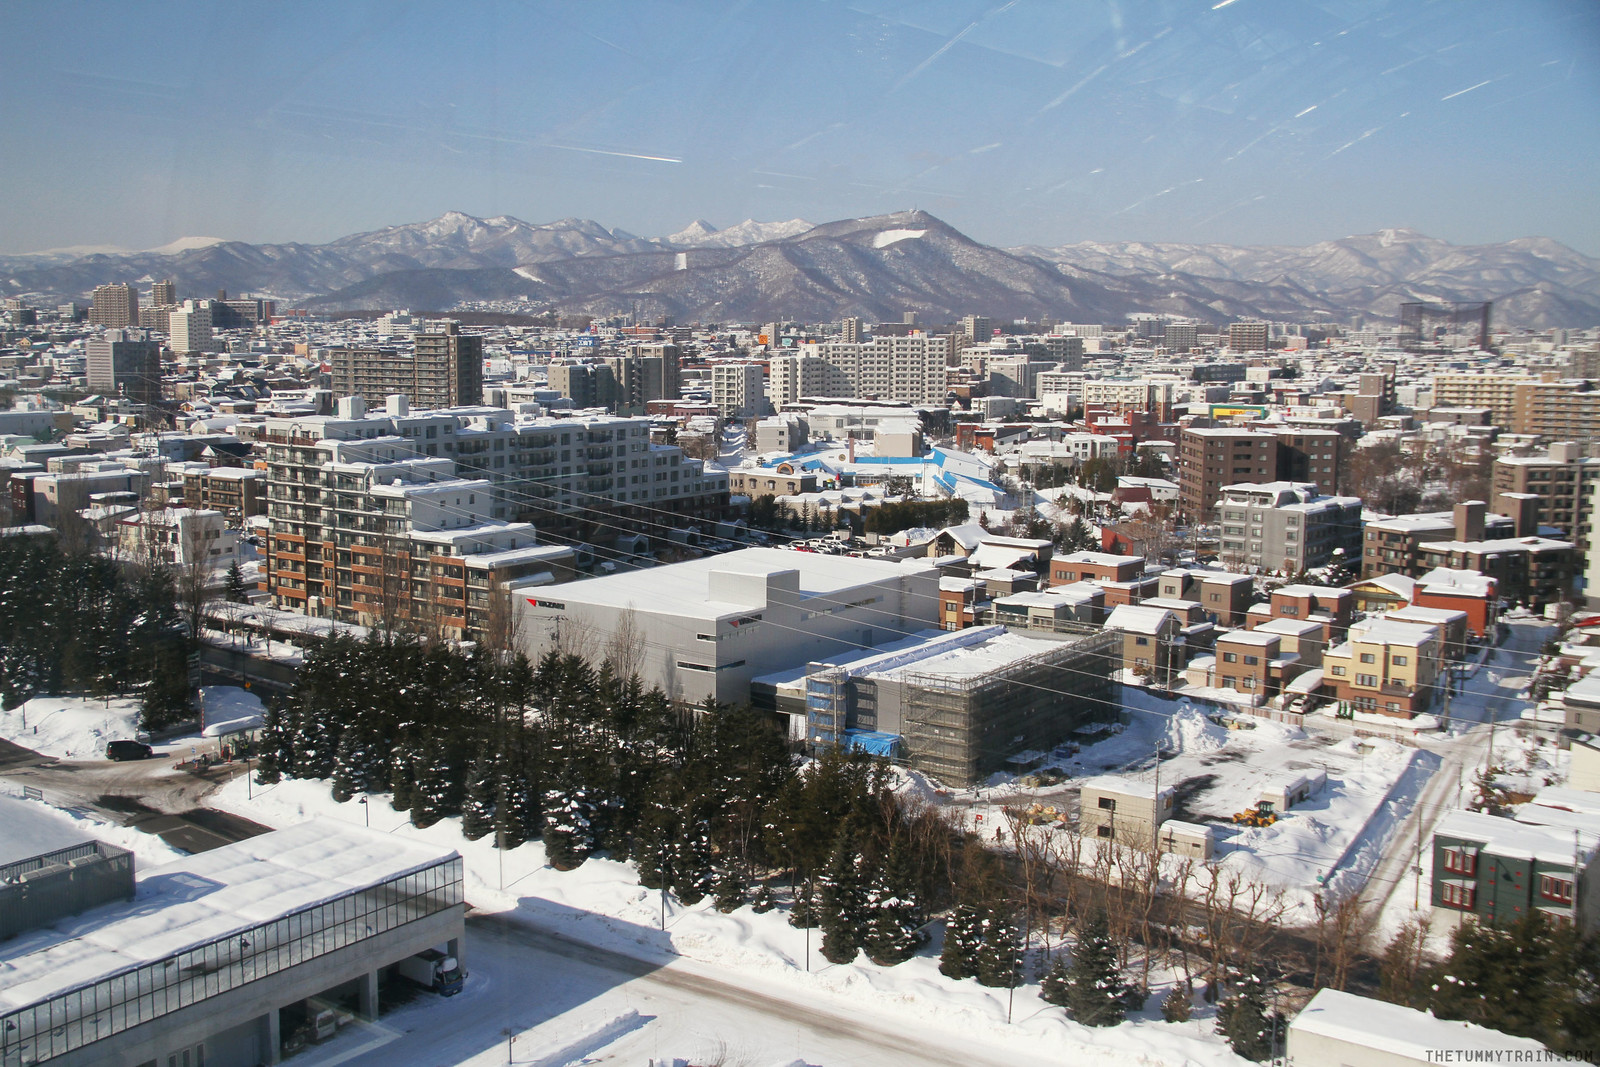 32536667800 b8a6af1d8a h - Sapporo Snow And Smile: 8 Unforgettable Winter Experiences in Sapporo City